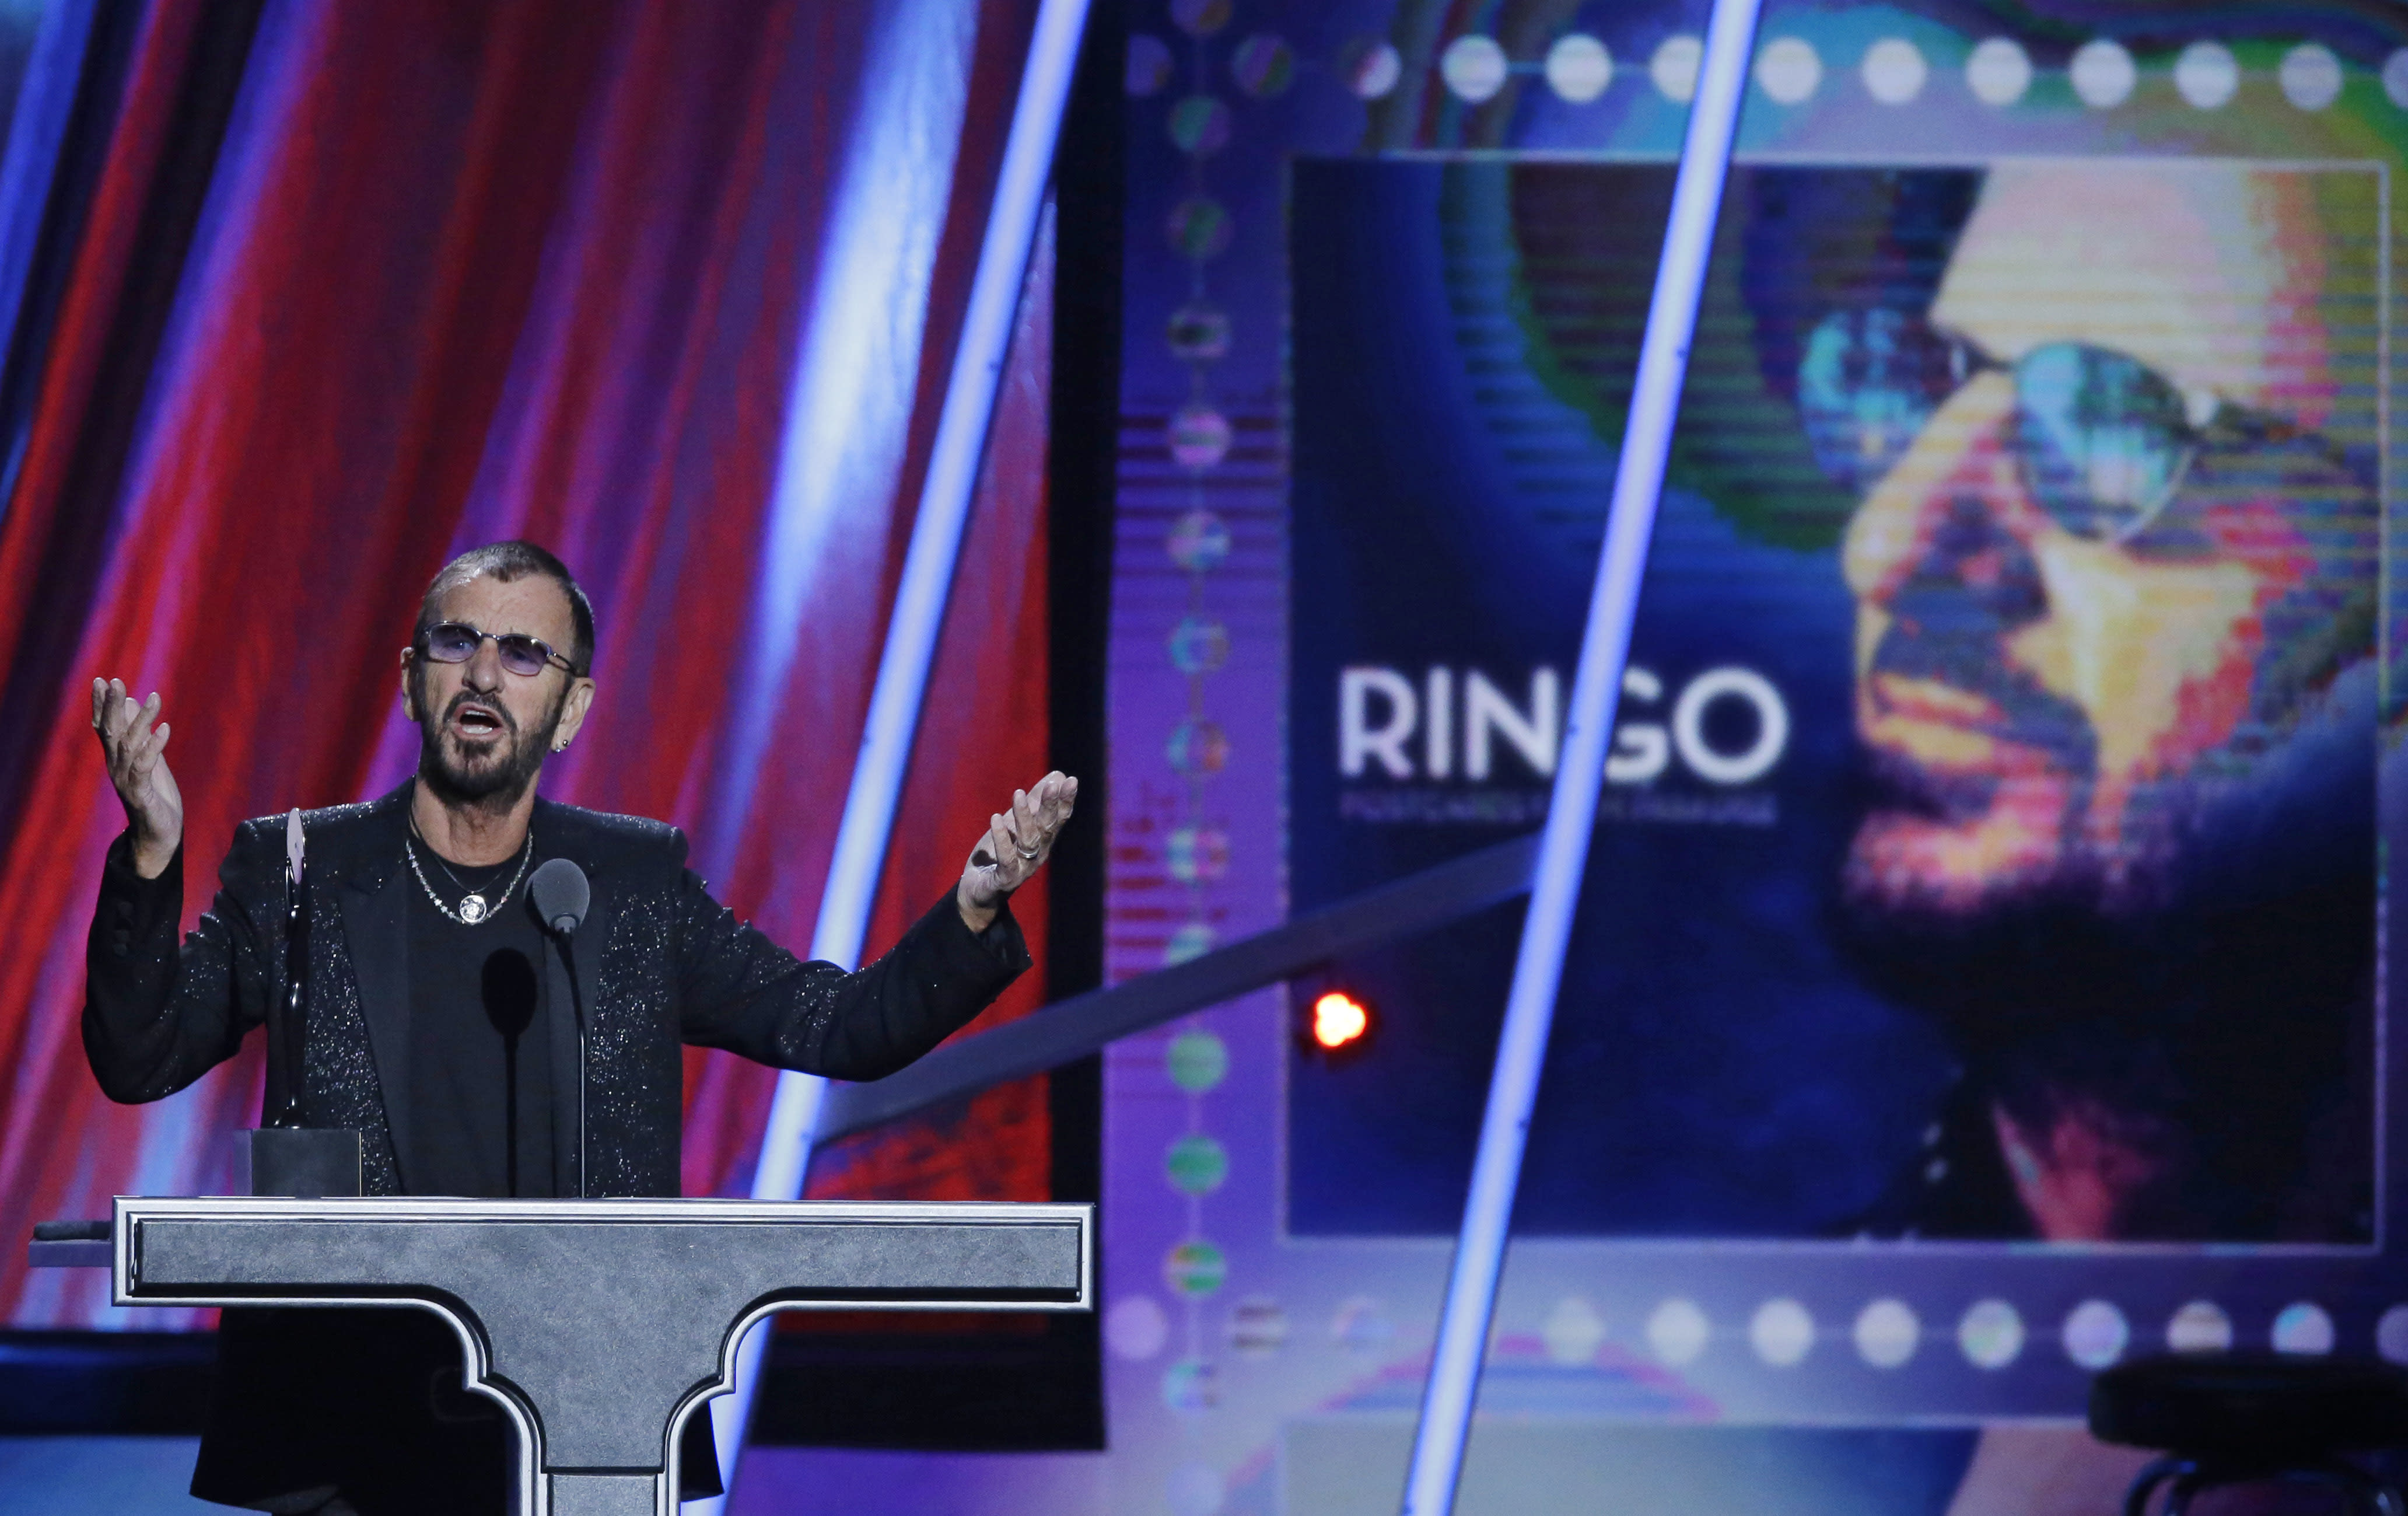 Ringo Starr, Green Day rock their way into Rock Hall